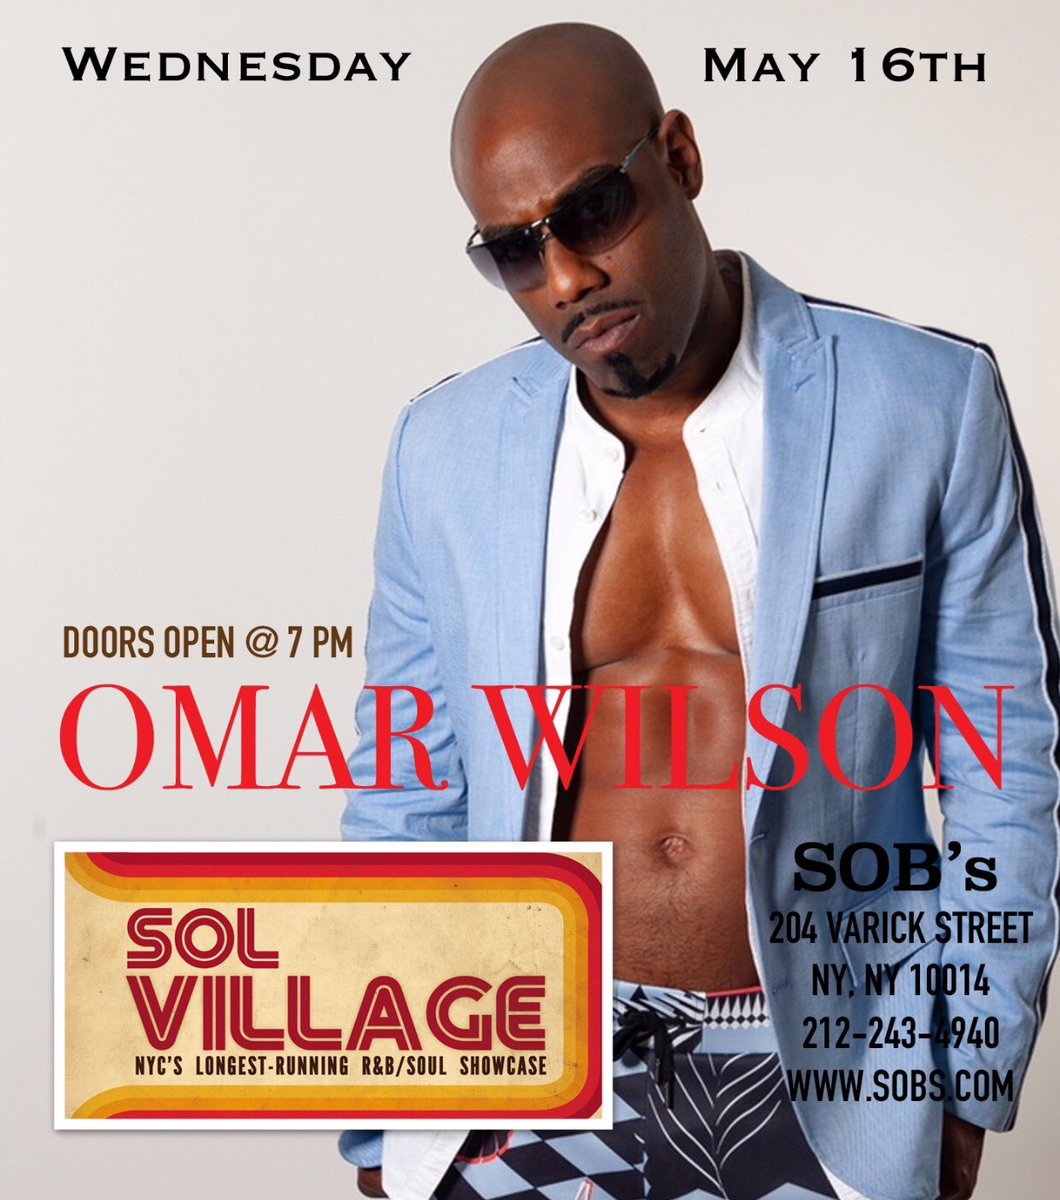 Wednesday MAY 16th! at SOB's @SOBs #NYC Doors Open @ 7pm OMAR WILSON @omarwilson🔥🔥